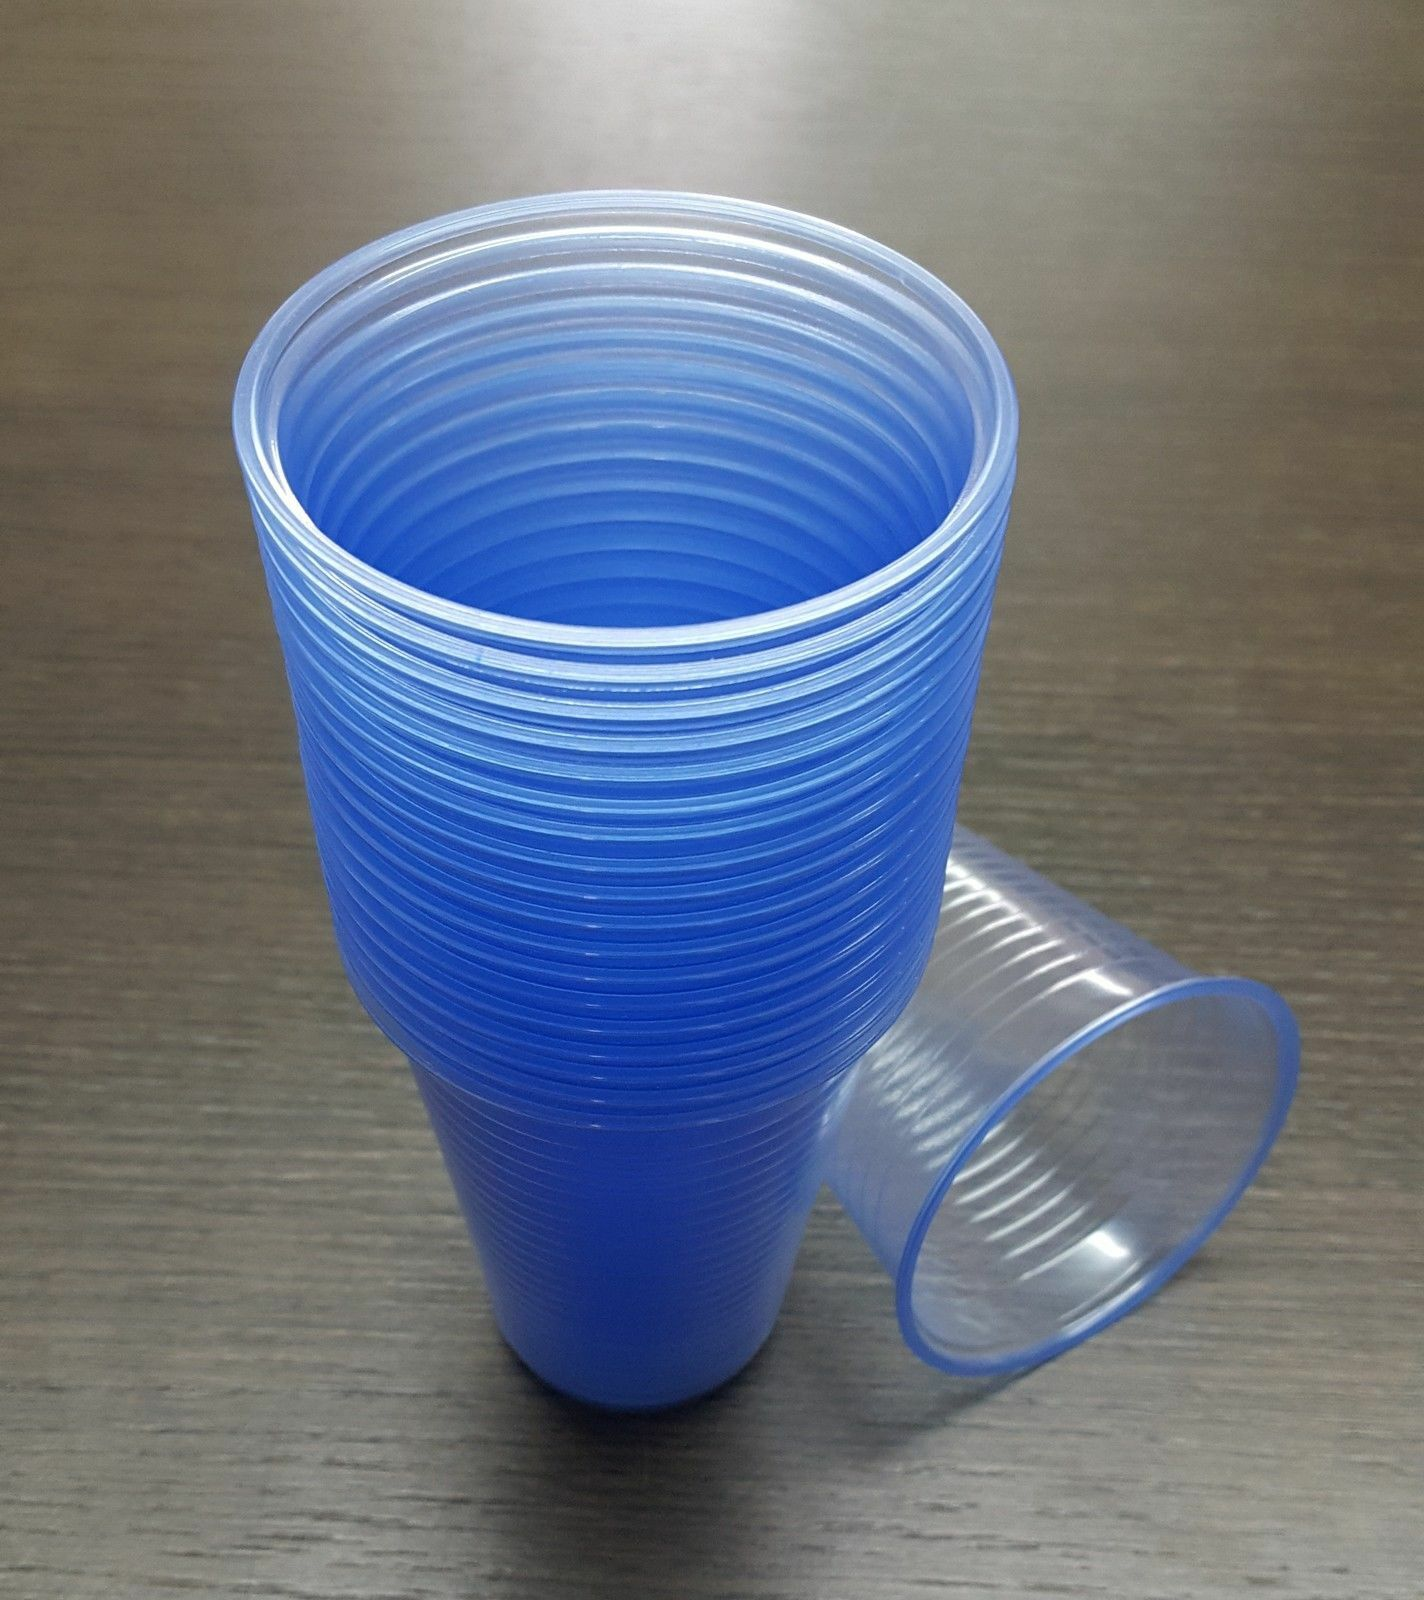 STRONG Blau PLASTIC CUPS TINT DISPOSABLE WATER VENDING 7 OZ NEW OFFER